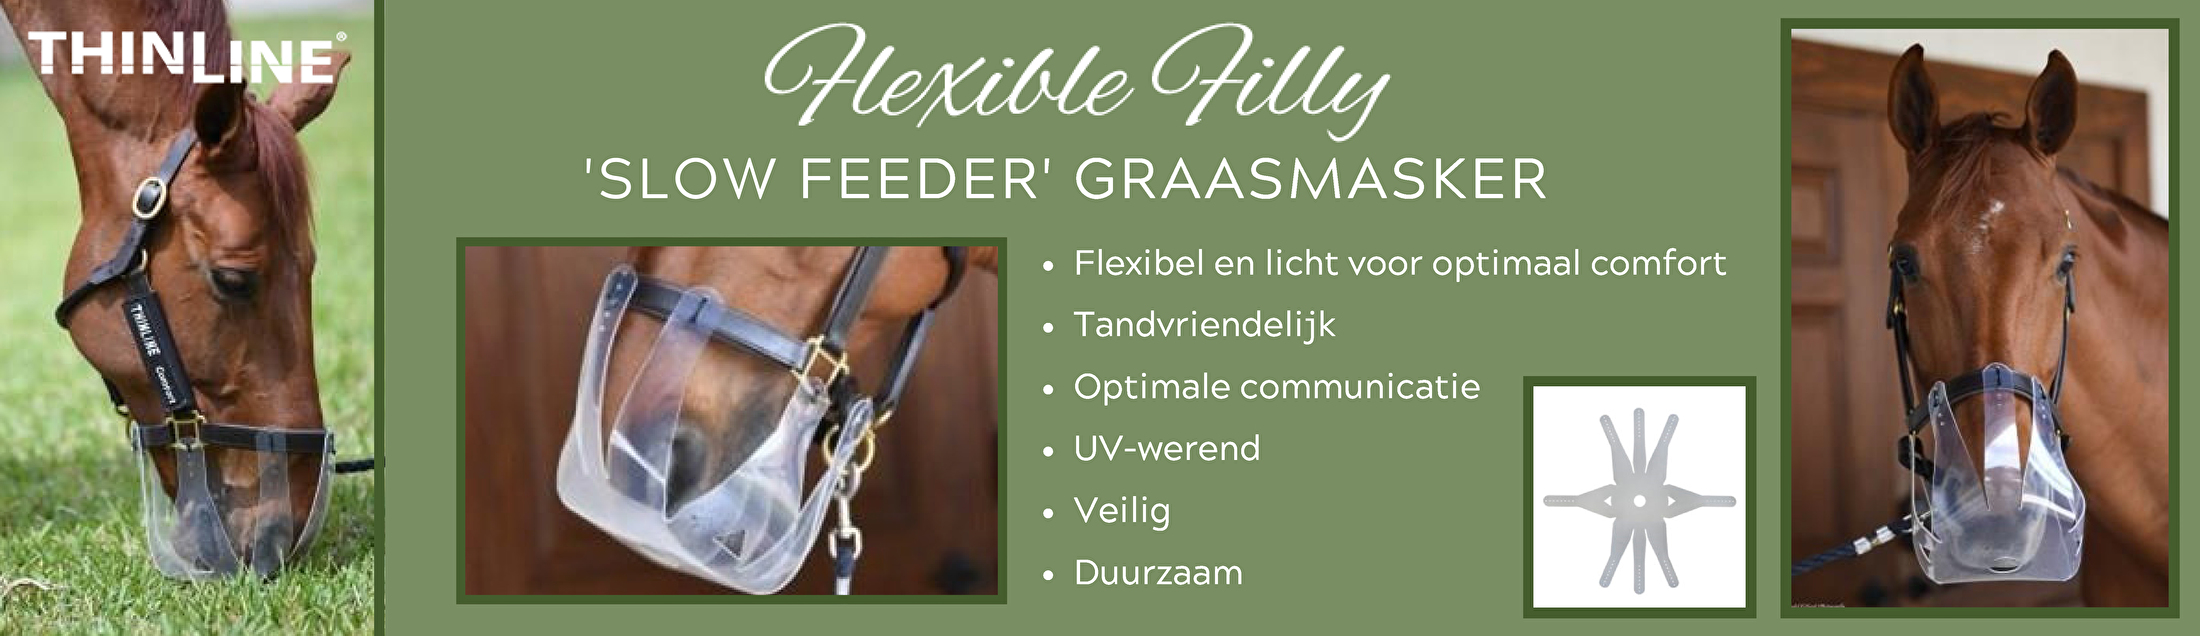 Thinline Flexible Filly Graasmasker